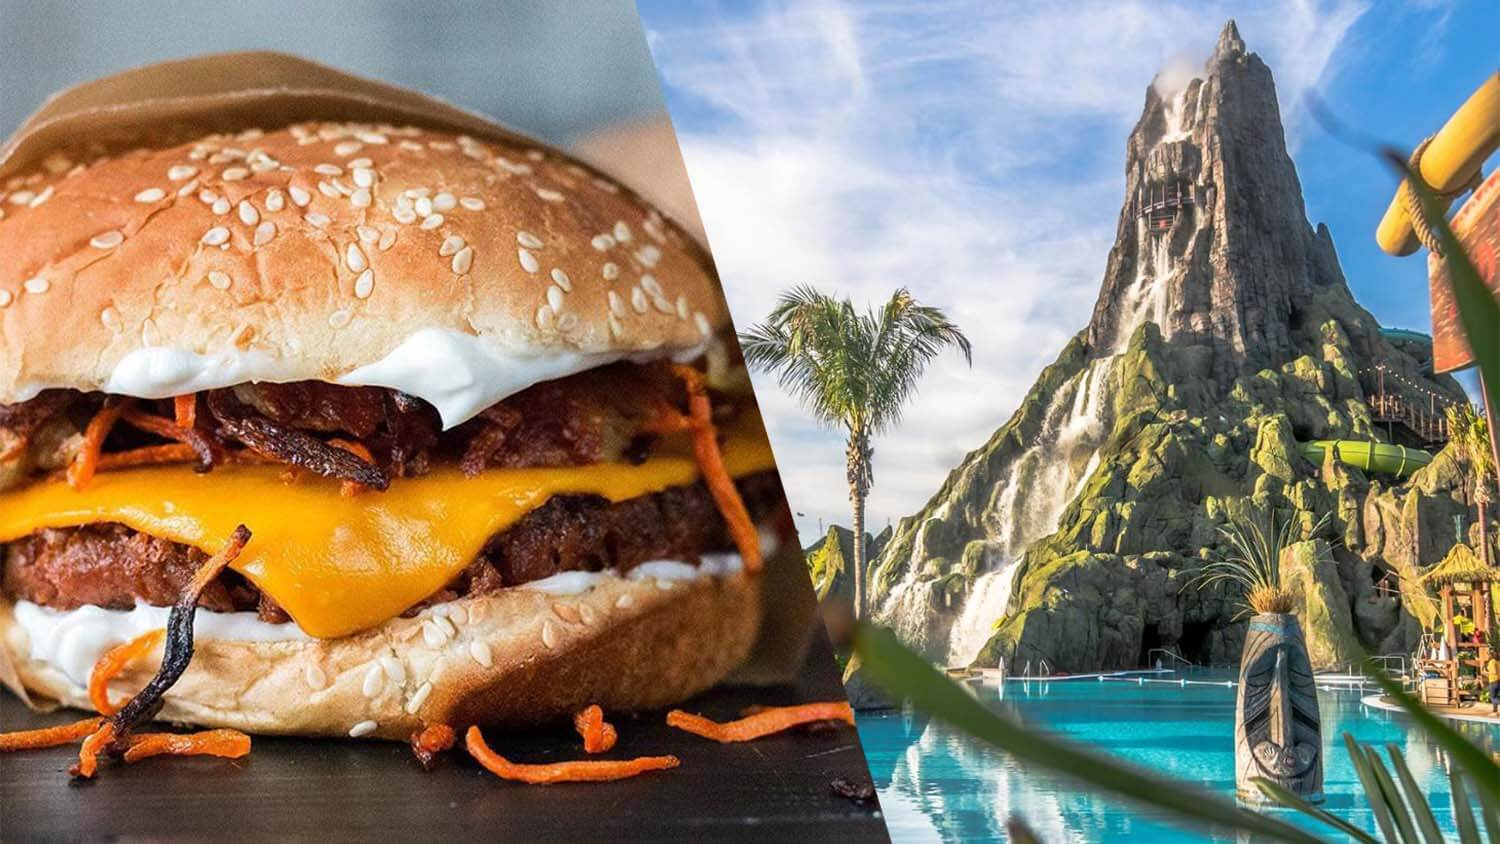 Universal Studios Adds Vegan Options to 7 Restaurants